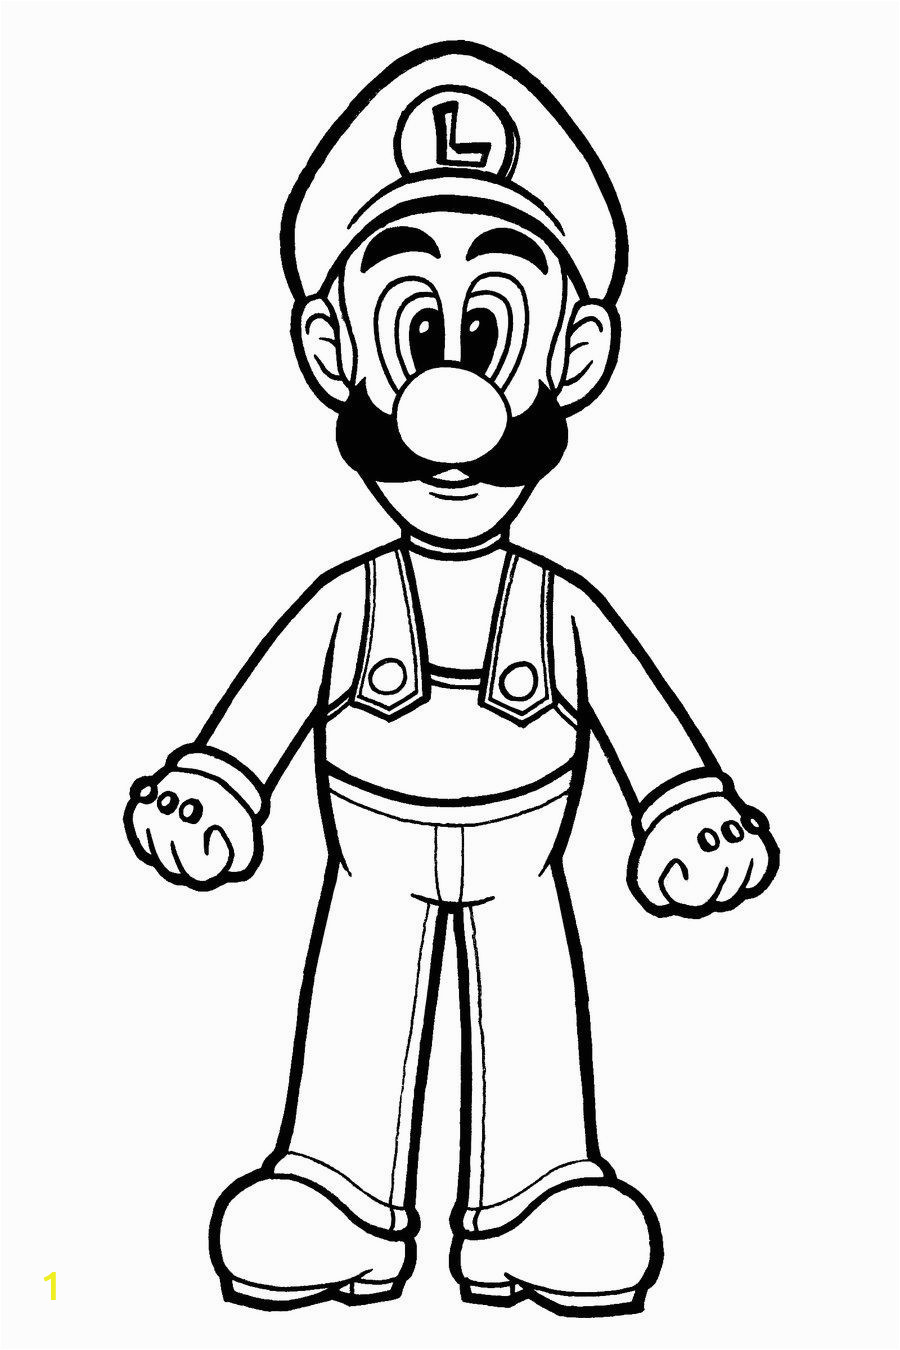 Printable Luigi Coloring Pages Printable Luigi Coloring Pages Free